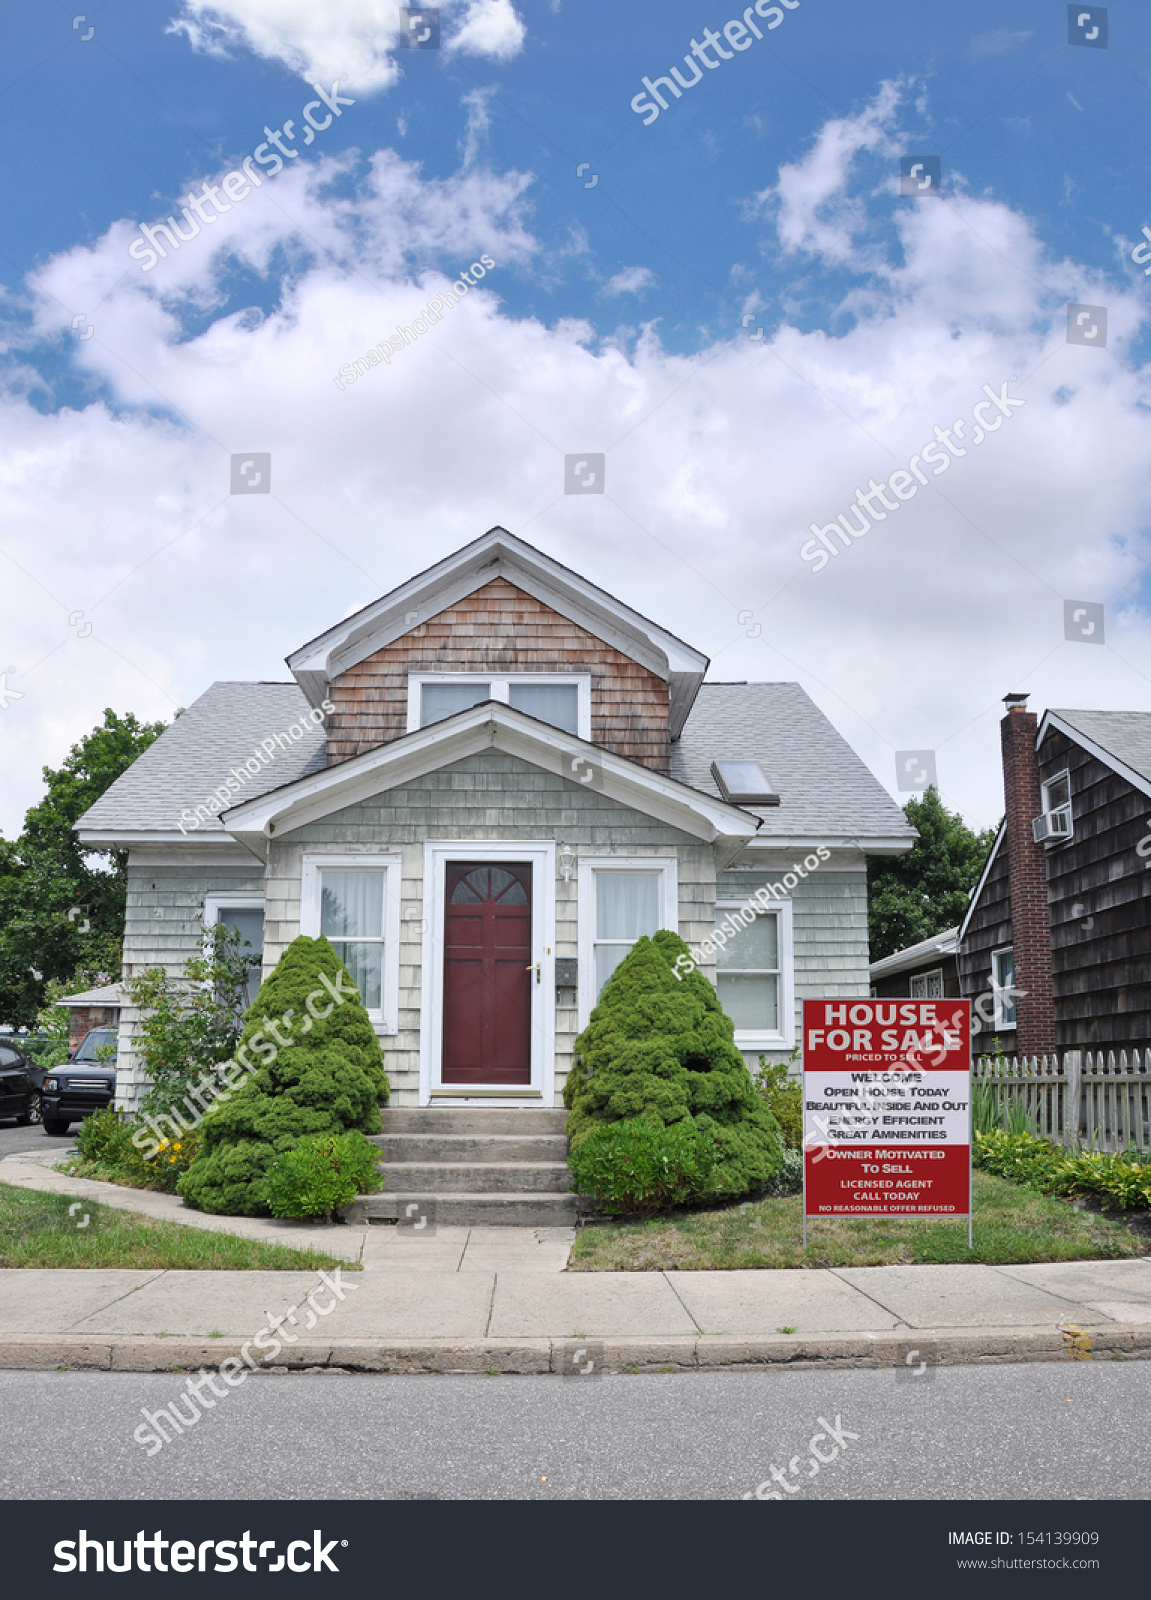 Real Estate for Sale Sign House For Sale Energy Efficient Great Amenities  in Residential Suburban Home